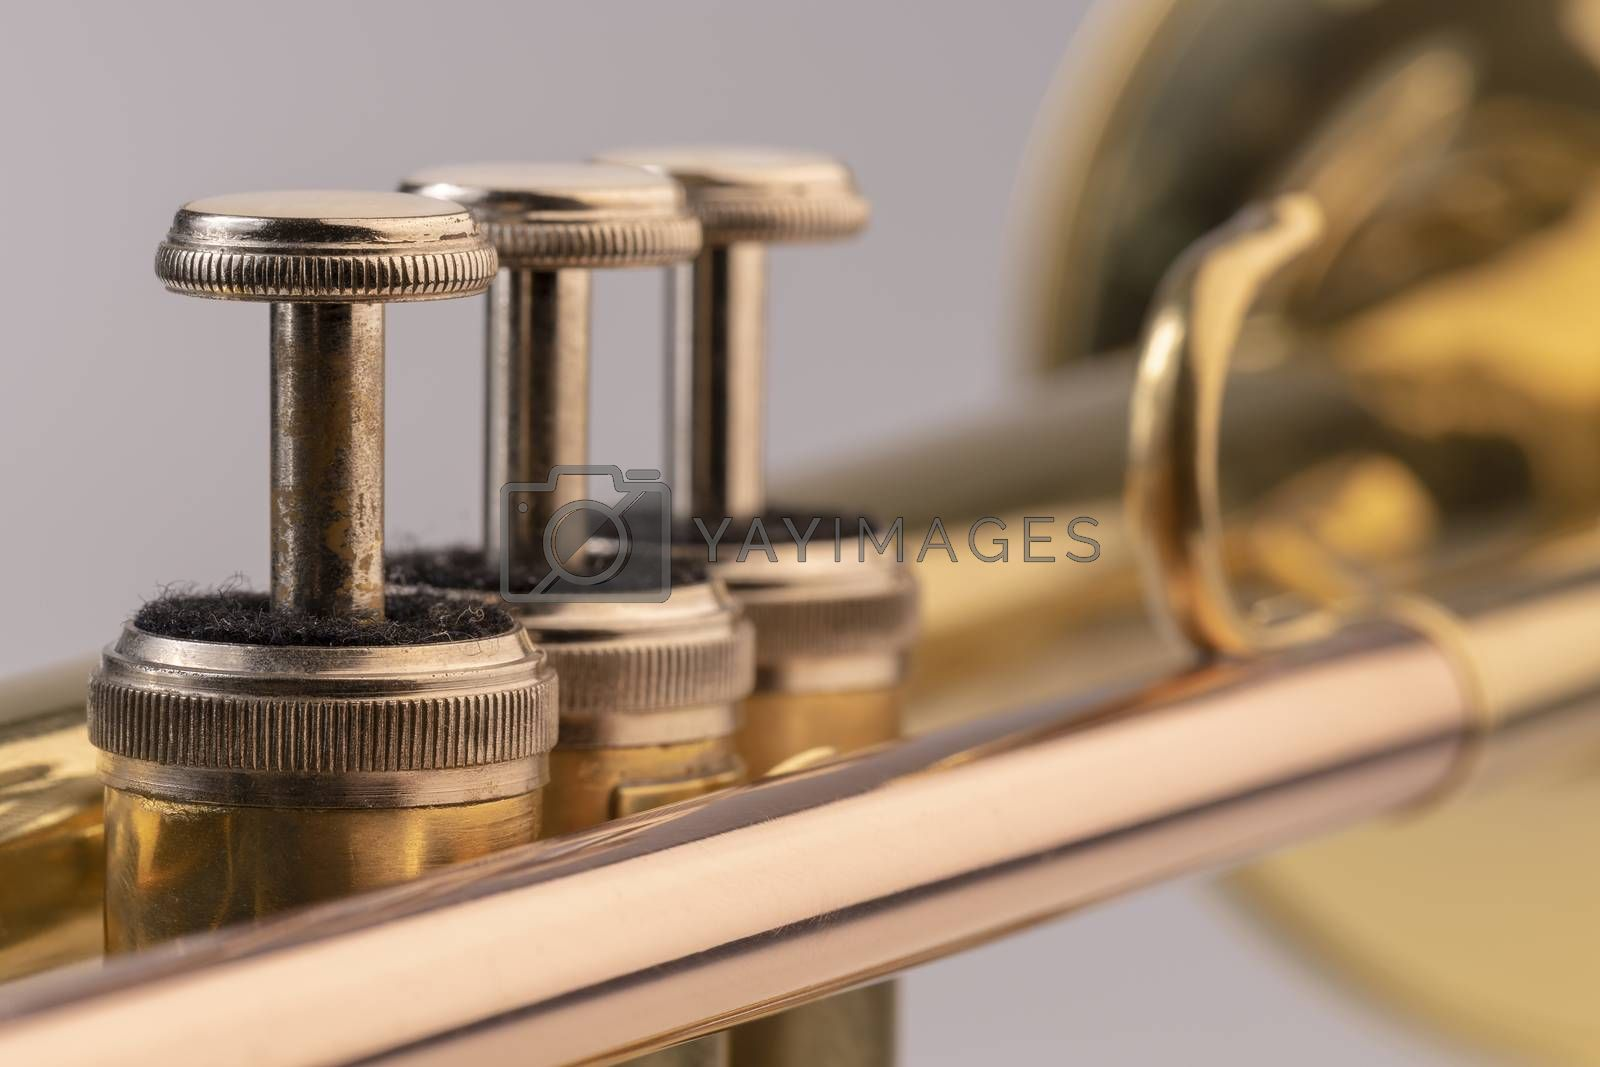 Musical instrument trumpet in detail  by Tofotografie